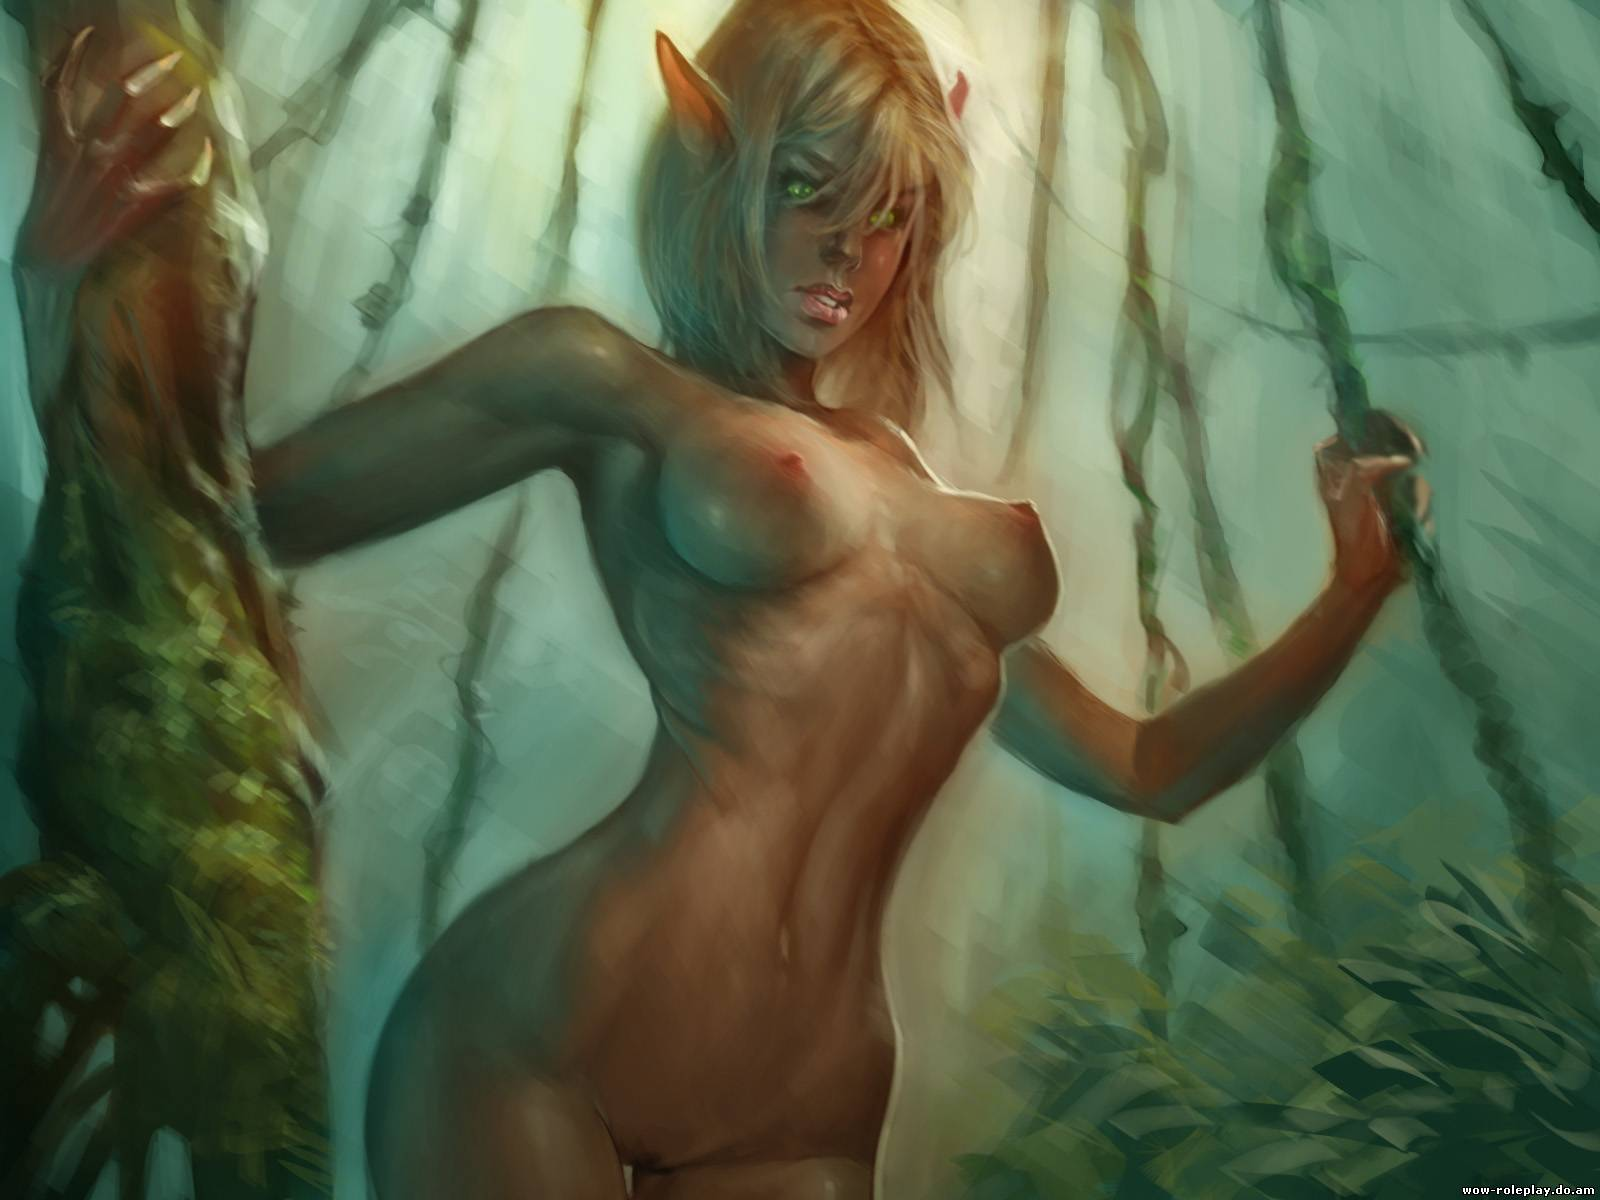 Nude sci-fi fantasy art cartoon videos